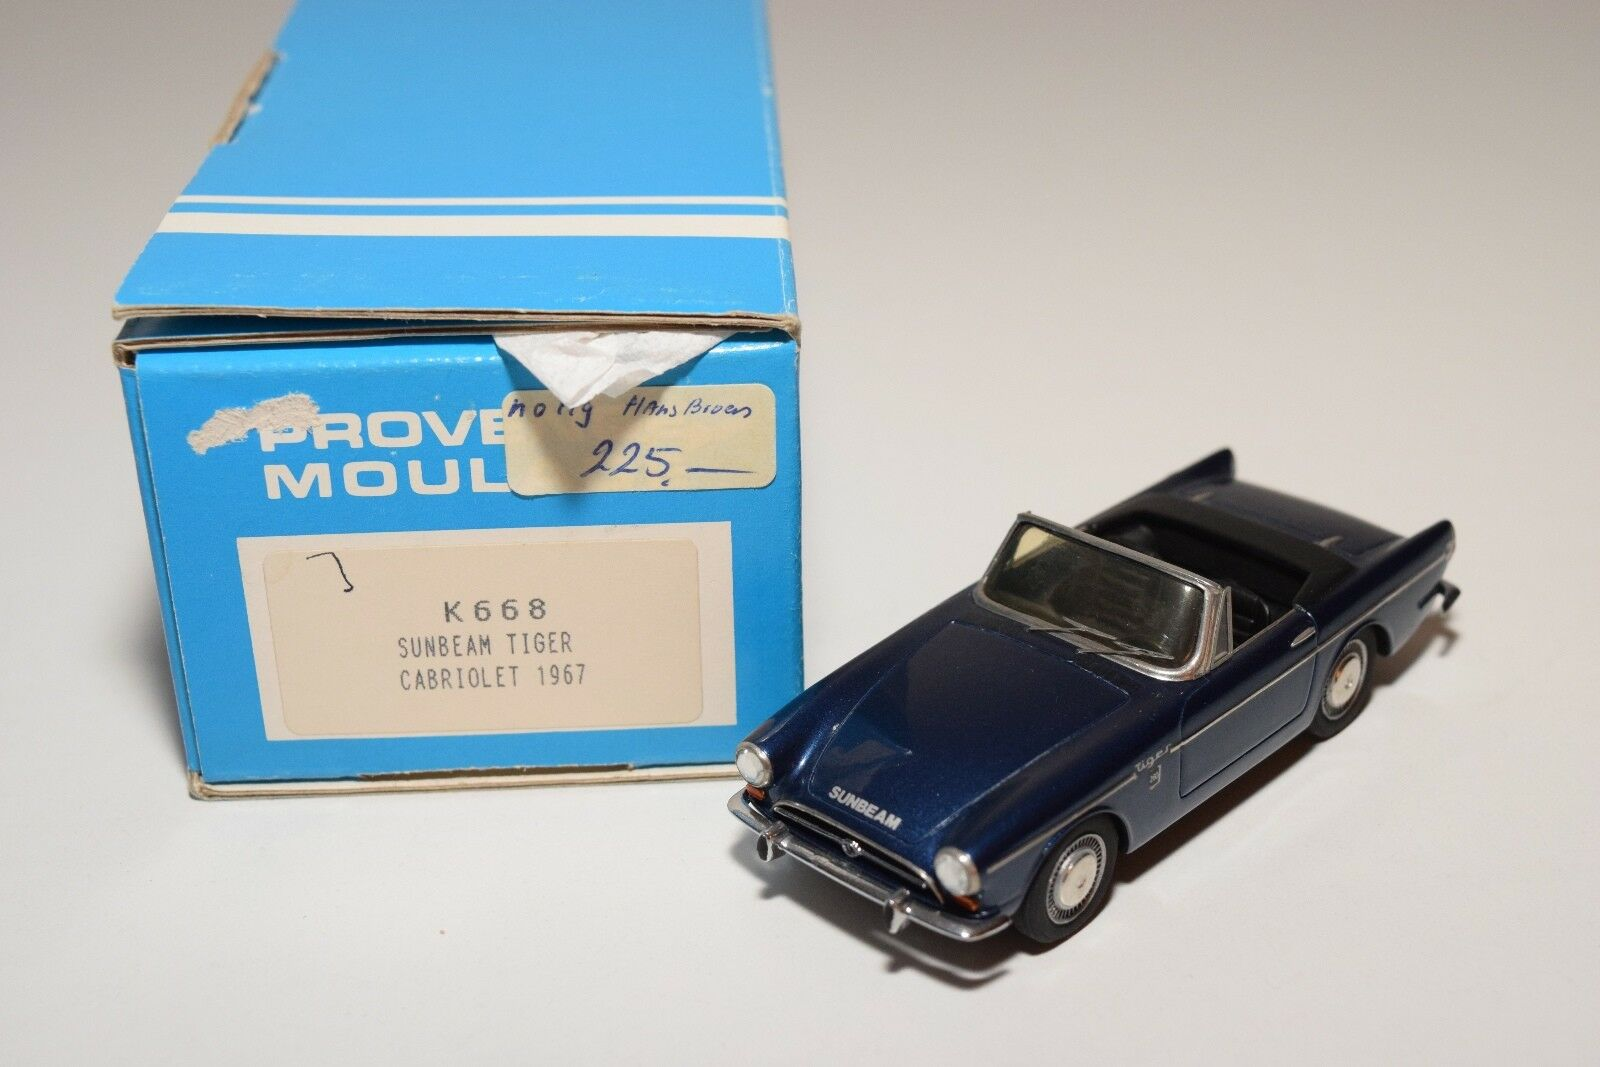 PROVENCE MOULAGE K668 SUNBEAM TIGER CABRIOLET 2018 METALLIC Azul MINT BOXED